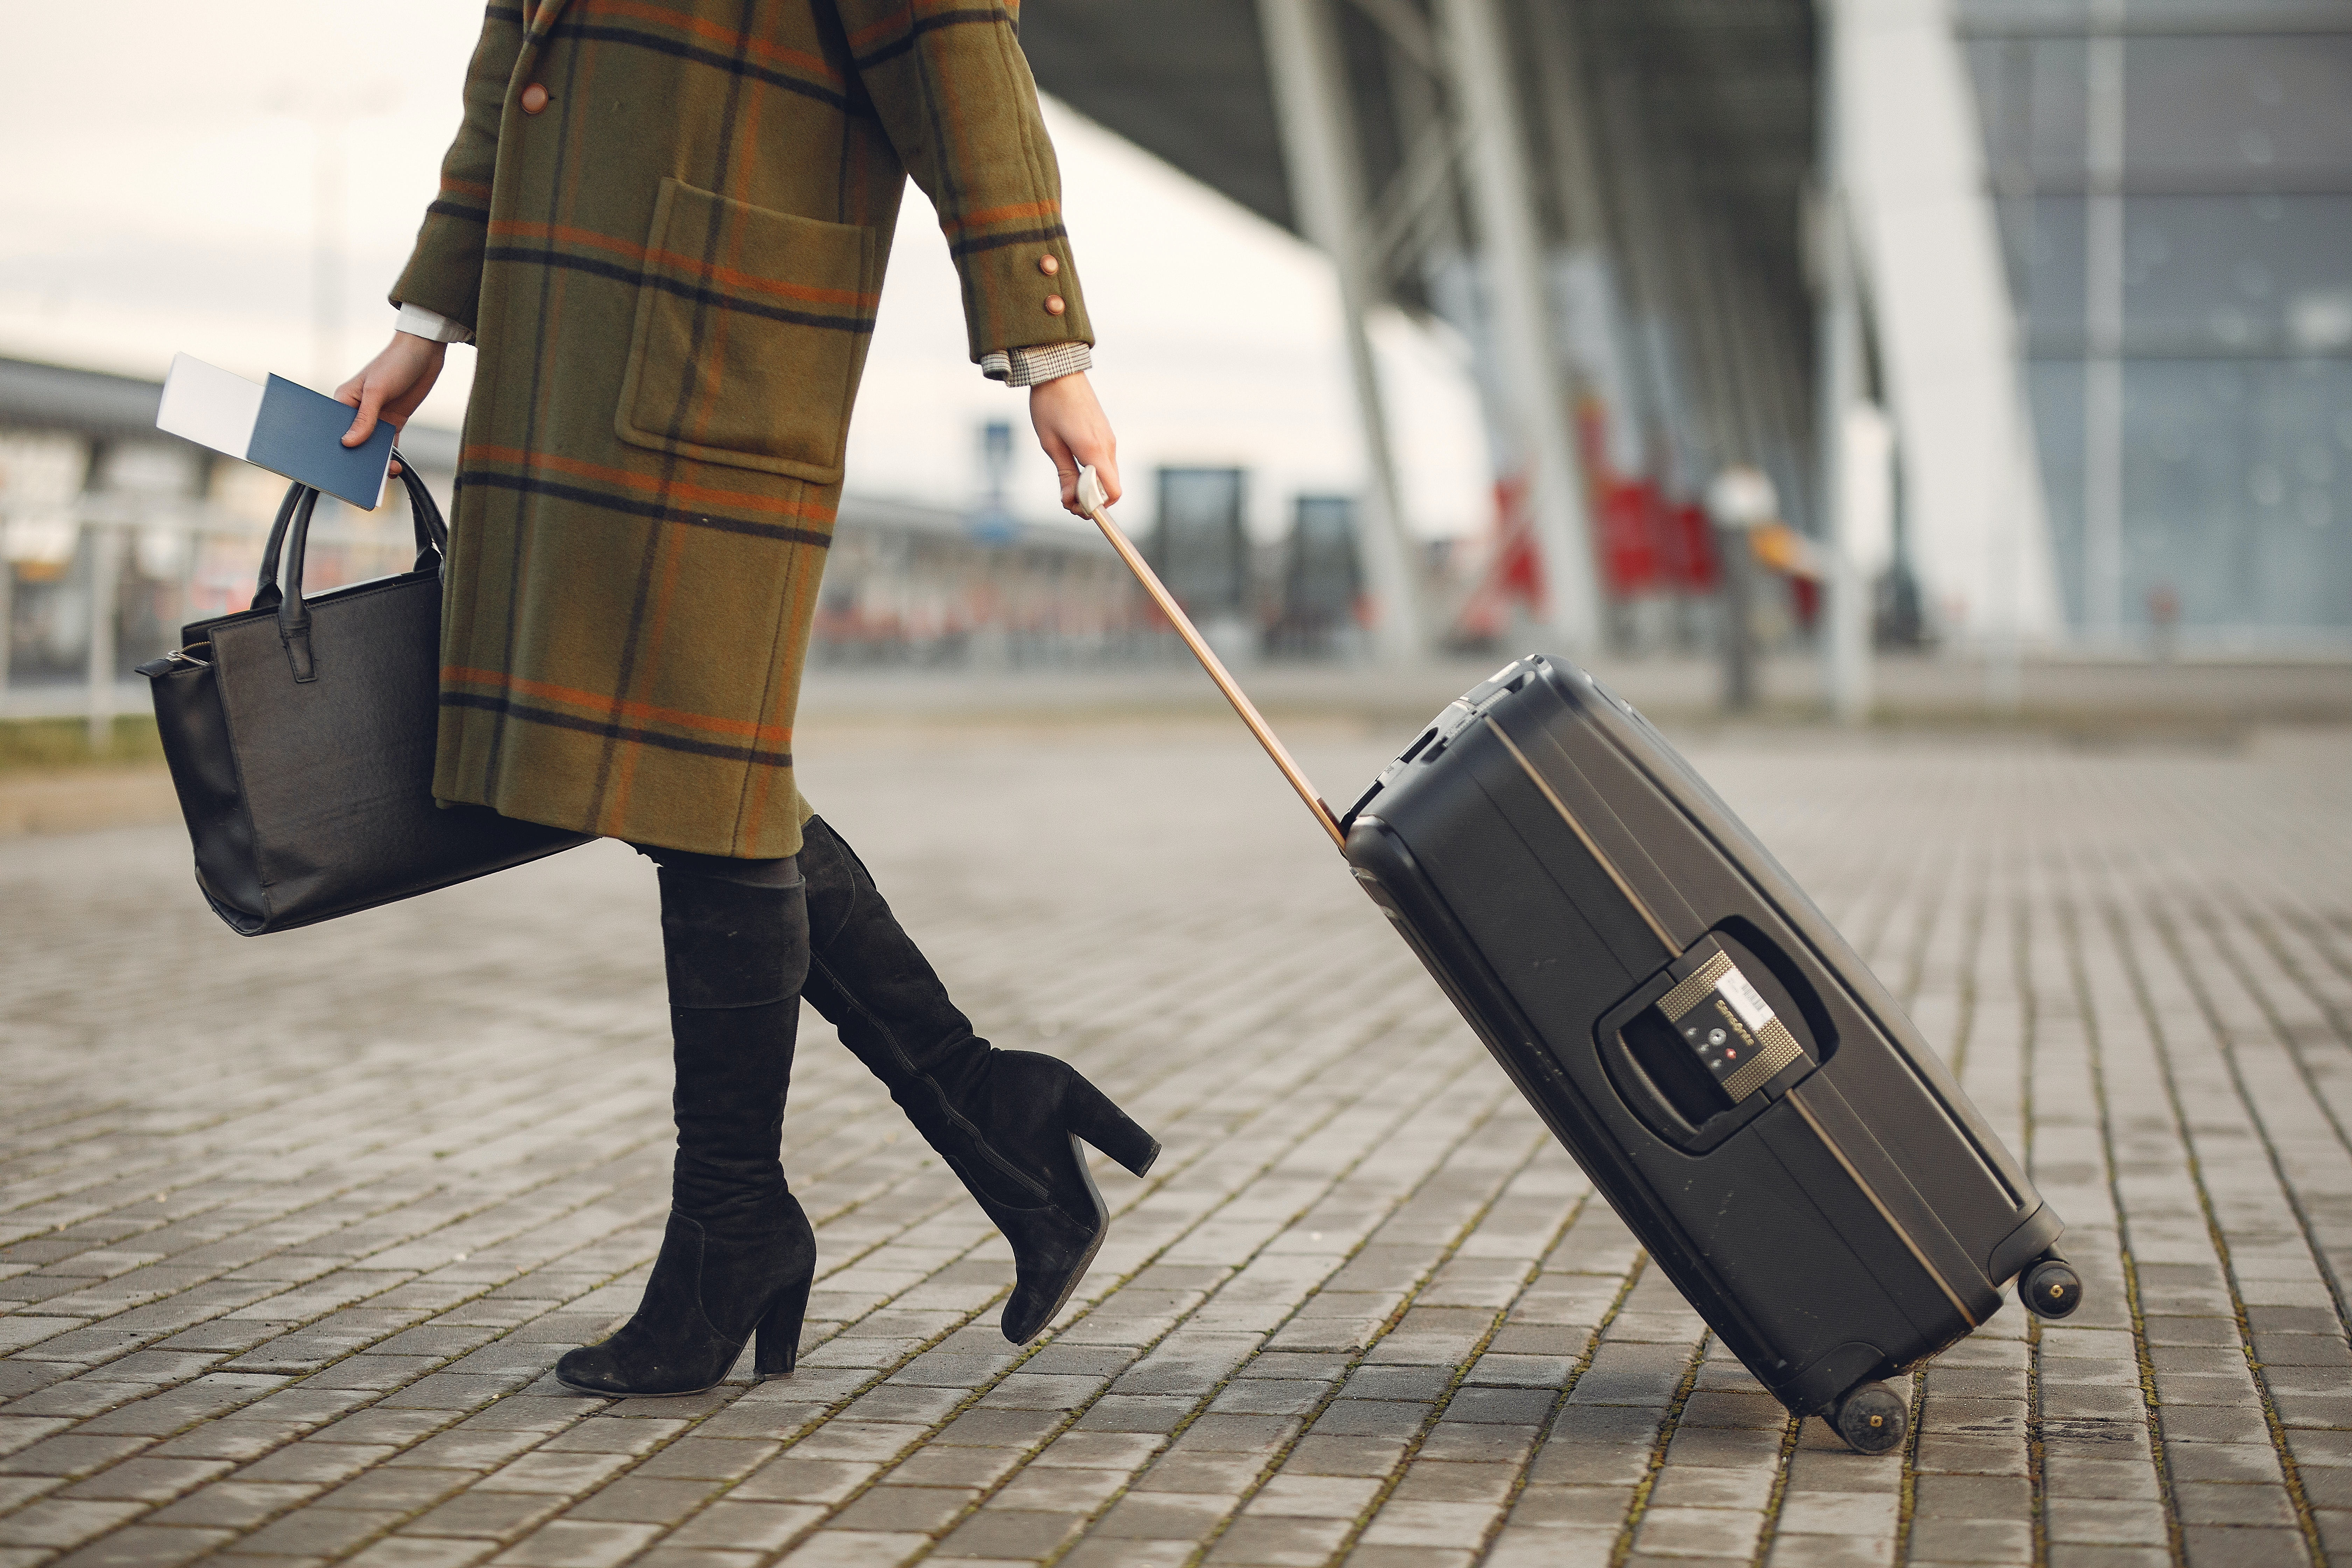 What are the societal problems you face when travelling?